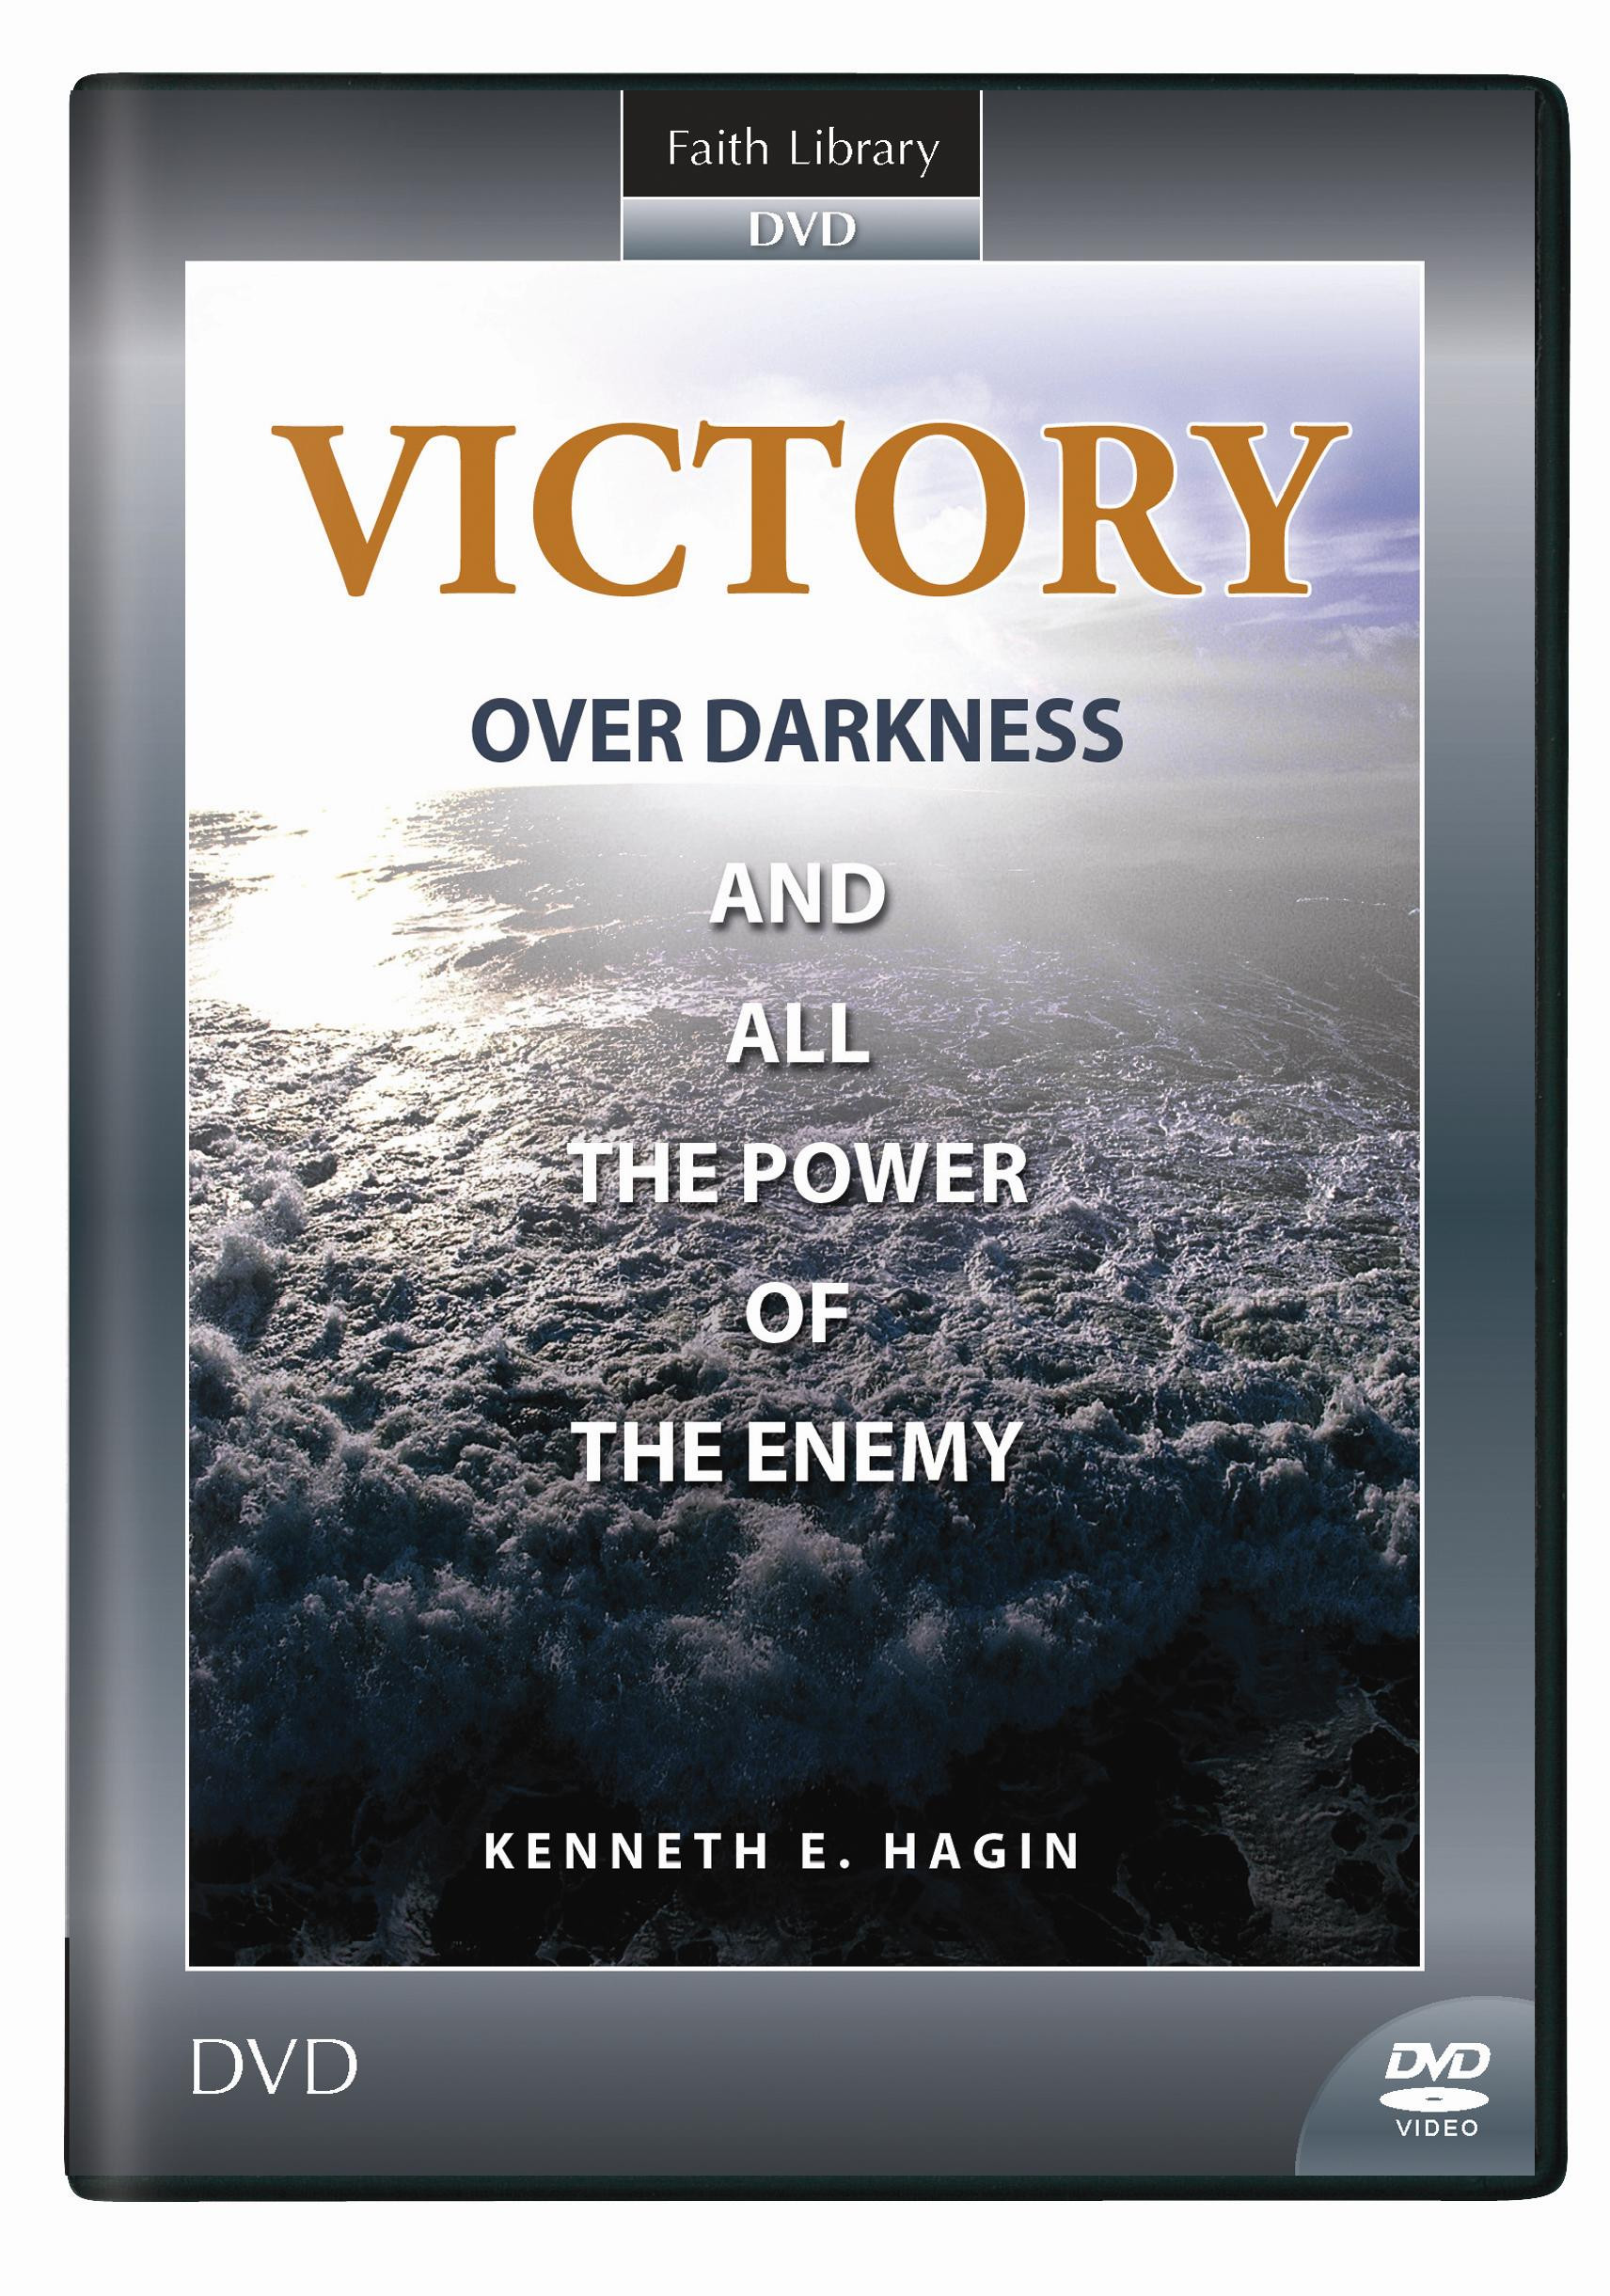 Victory Over Darkness And All The Power of the Enemy (1 DVD)